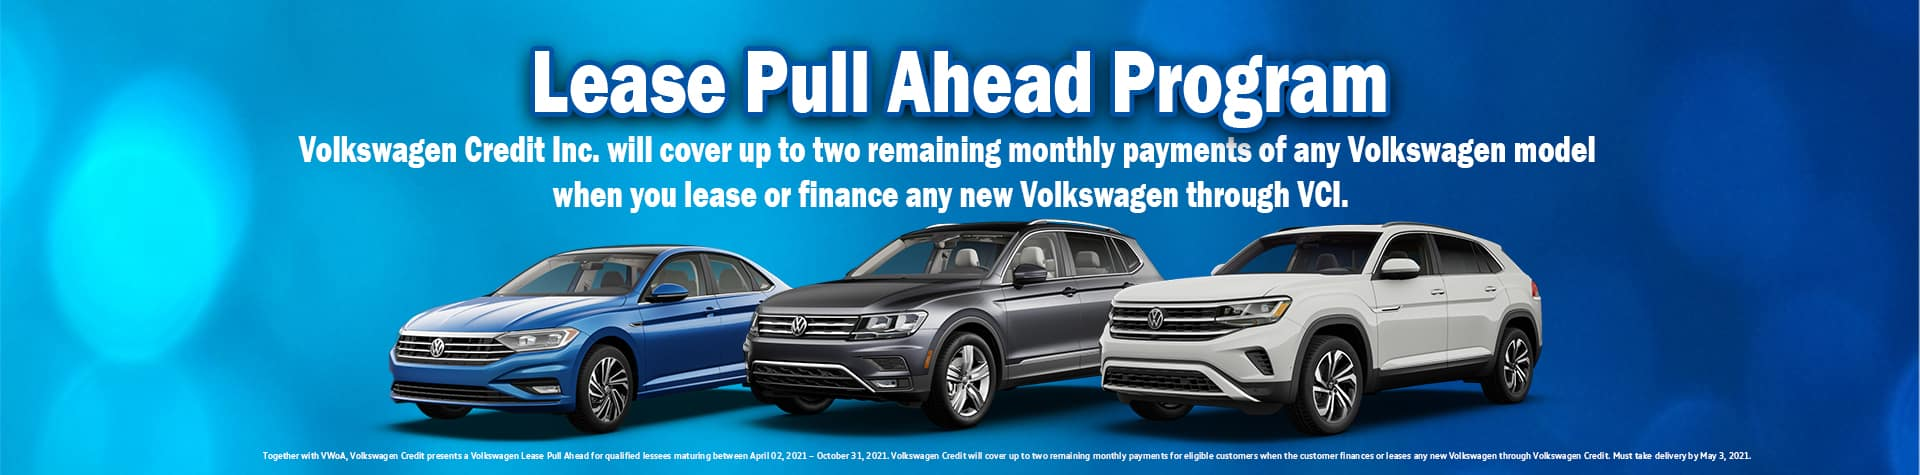 Lease pull ahead banner_4.7